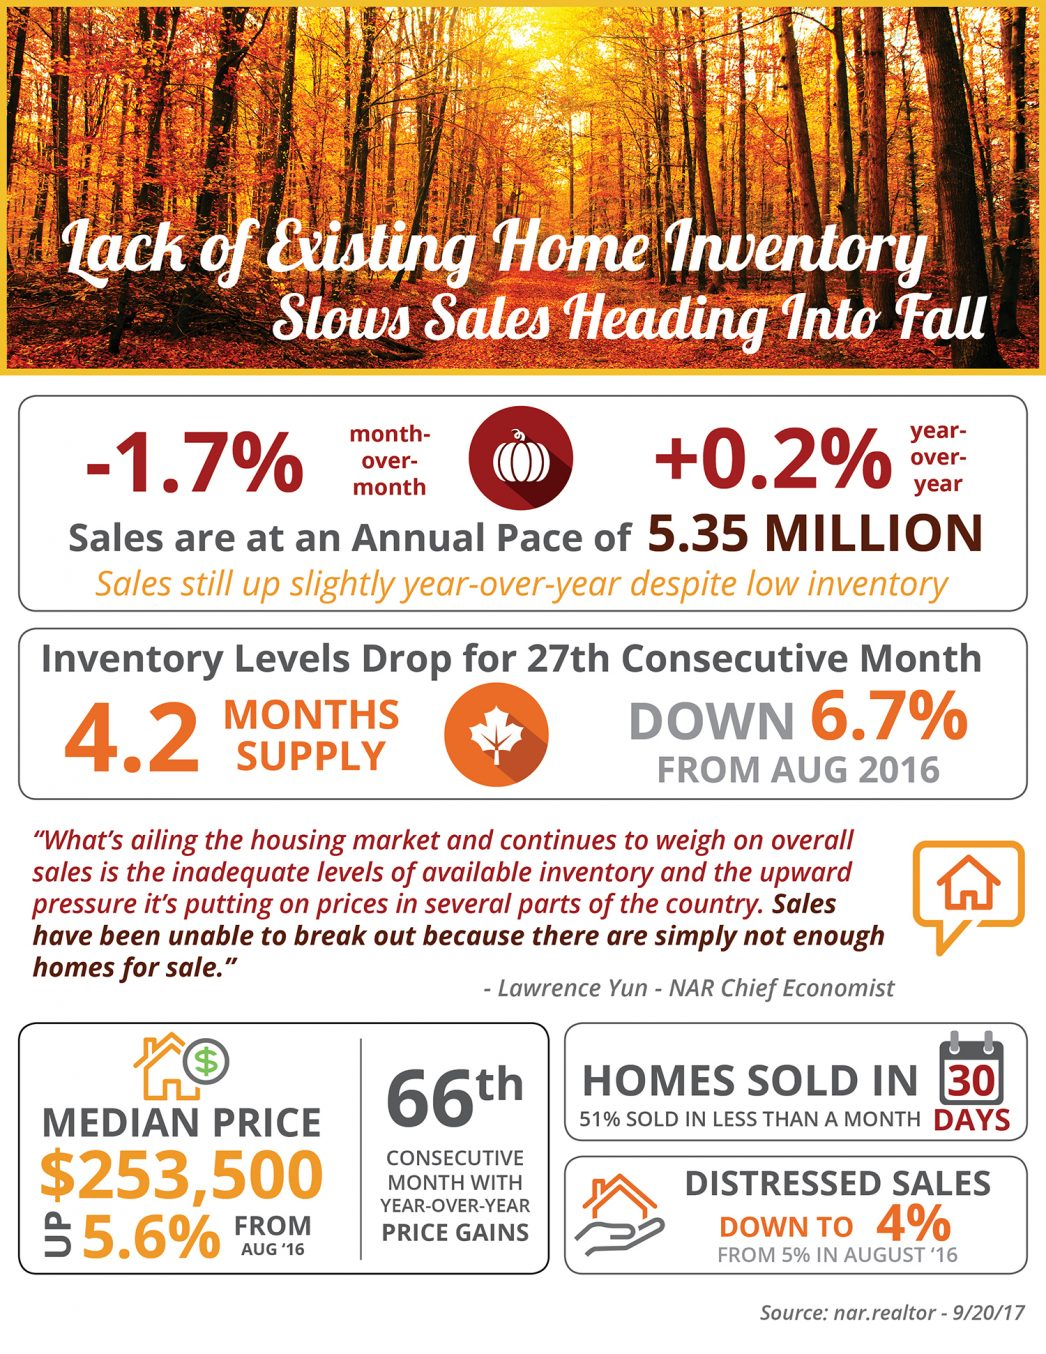 Lack of Existing Home Inventory Slows Sales Heading into Fall 2017 [INFOGRAPHIC]